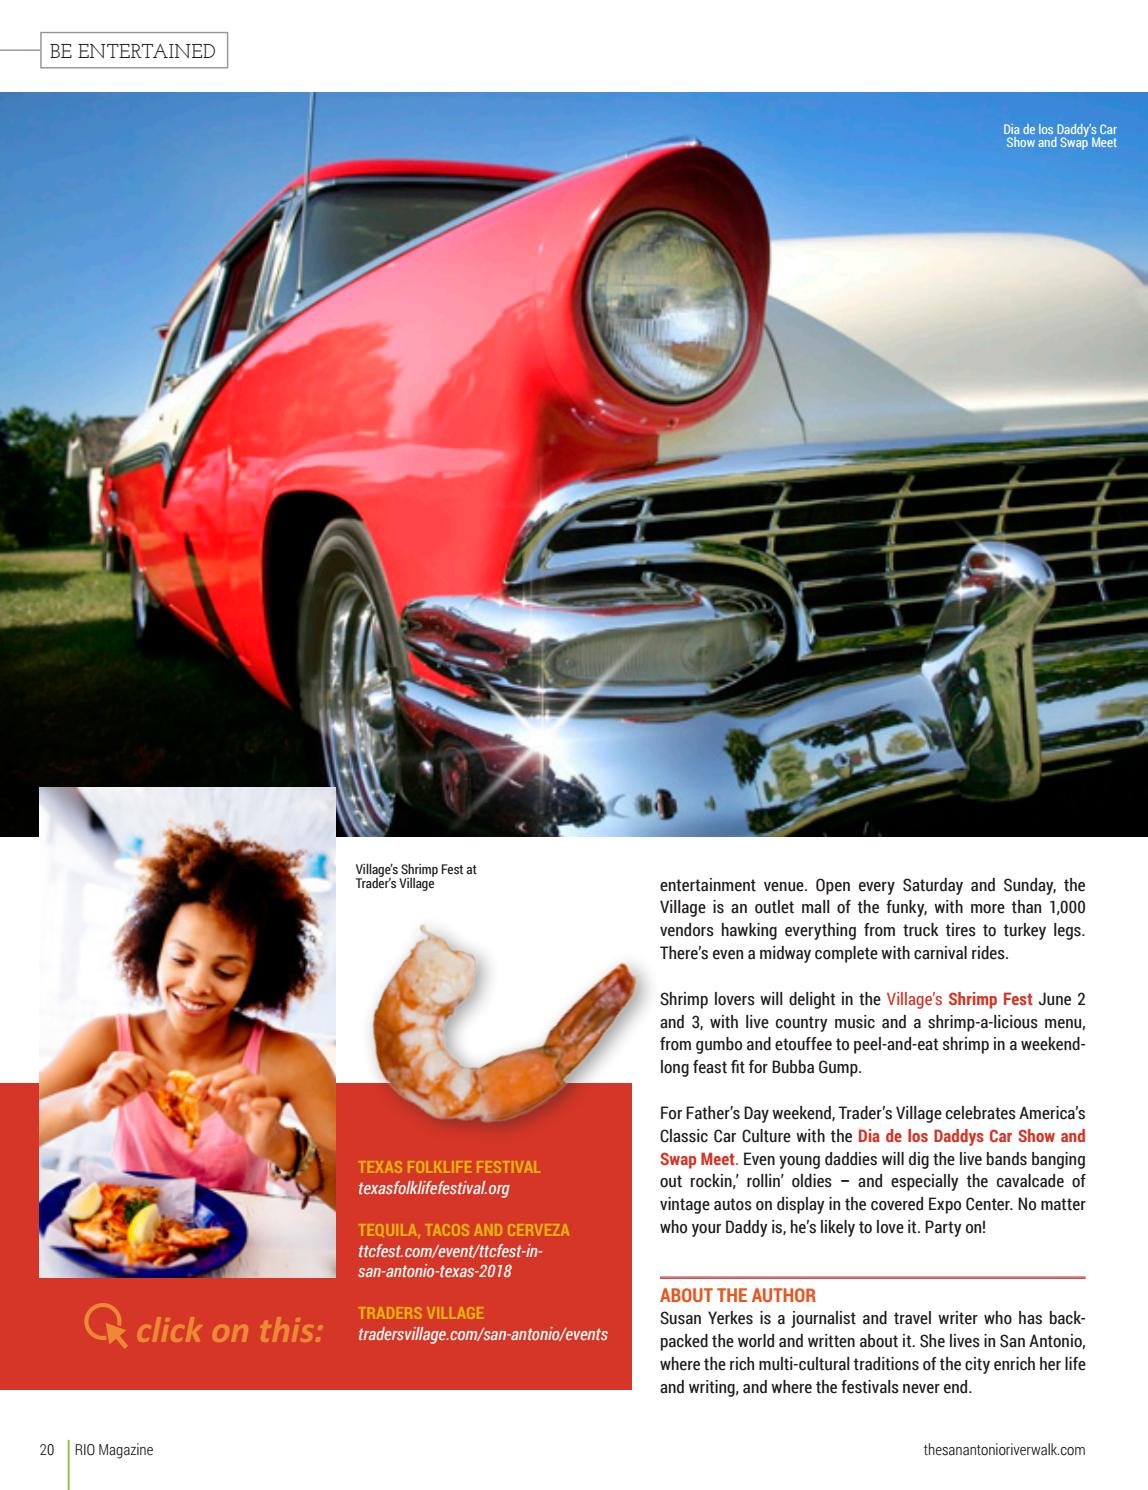 Rio June Issuu By Traveling Blender Issuu - Traders village san antonio car show